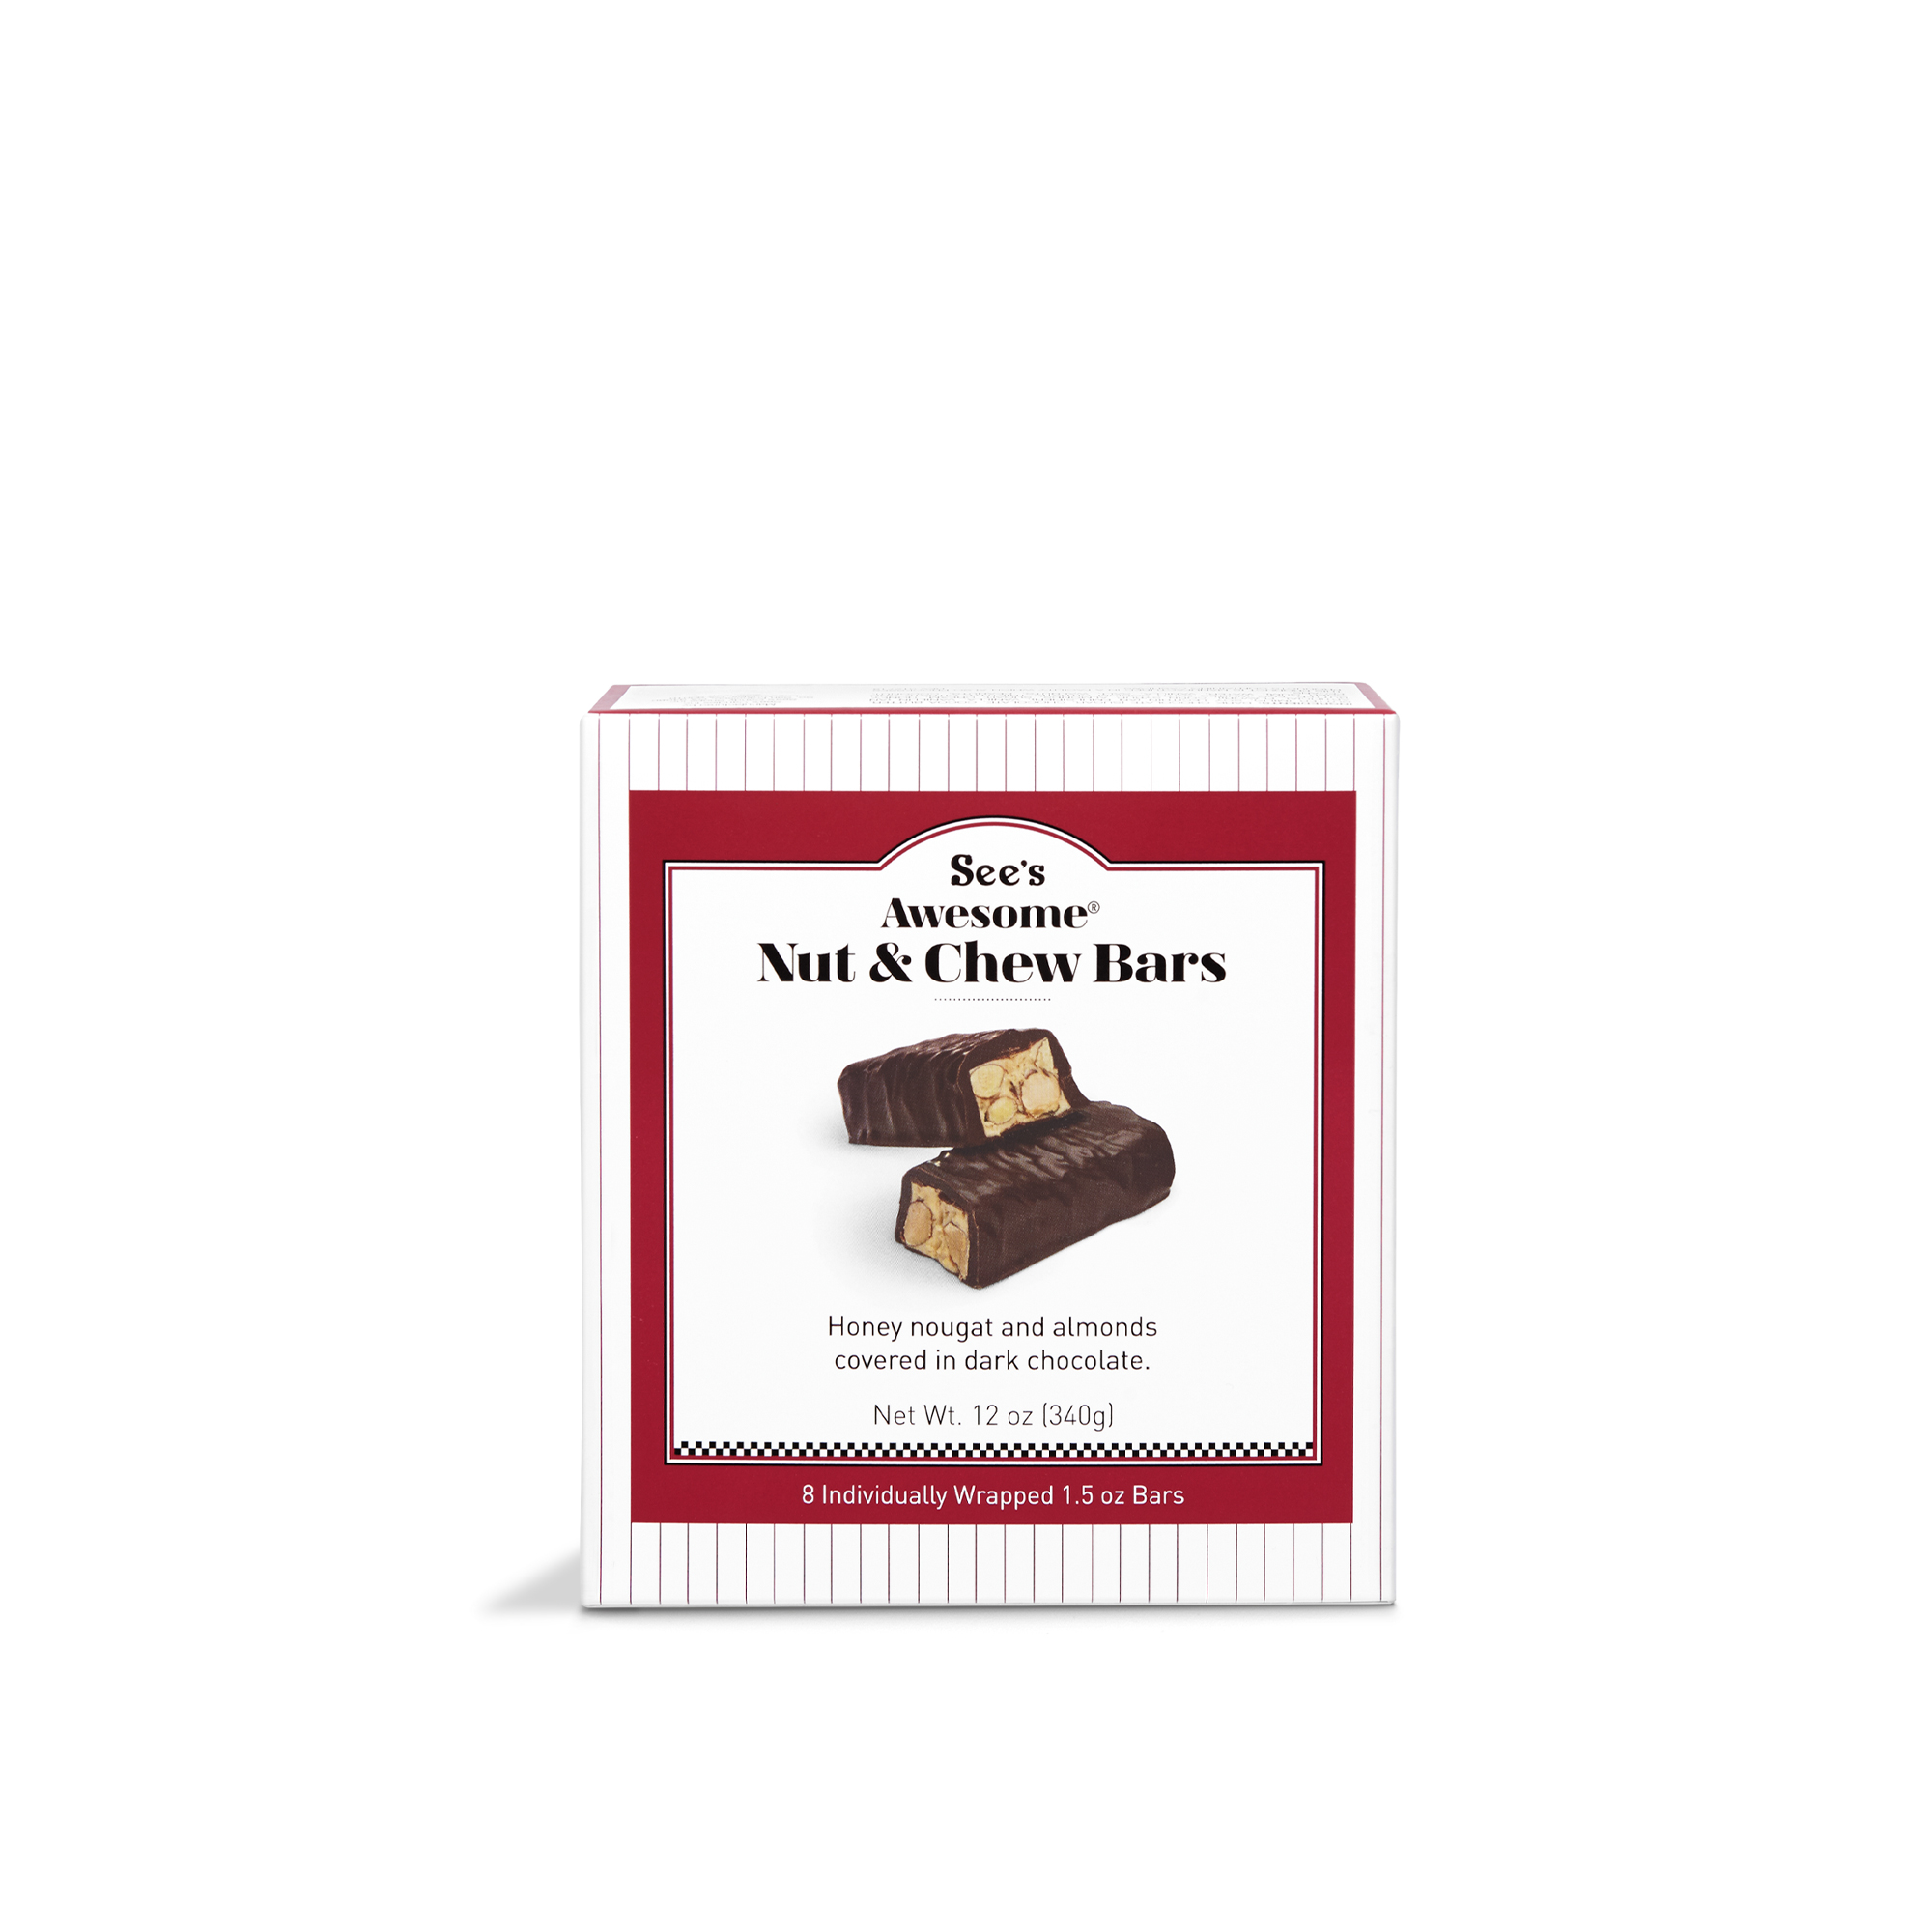 12 oz See's Awesome® Nut & Chew Bars